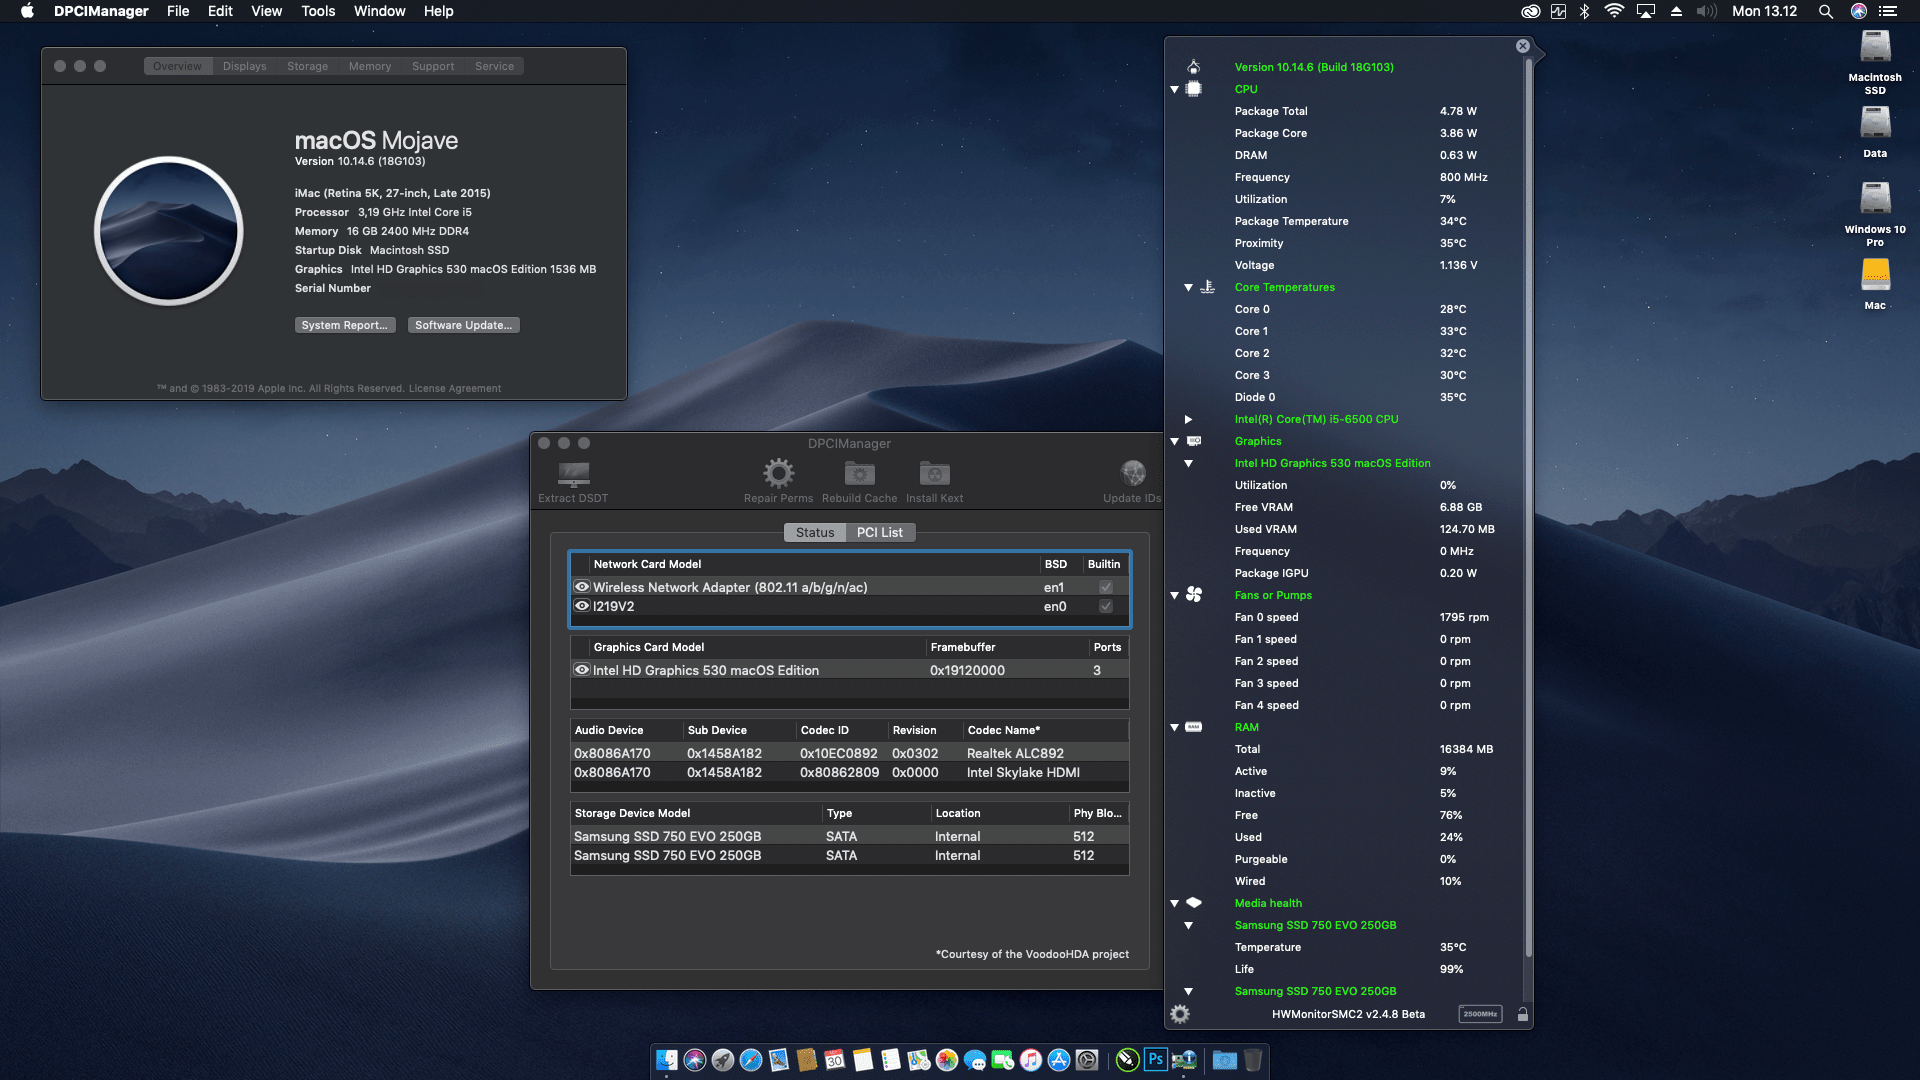 Success Hackintosh macOS Mojave 10.14.6 Build 18G103 at Gigabyte Z170M-D3H + Intel Core i5 6500